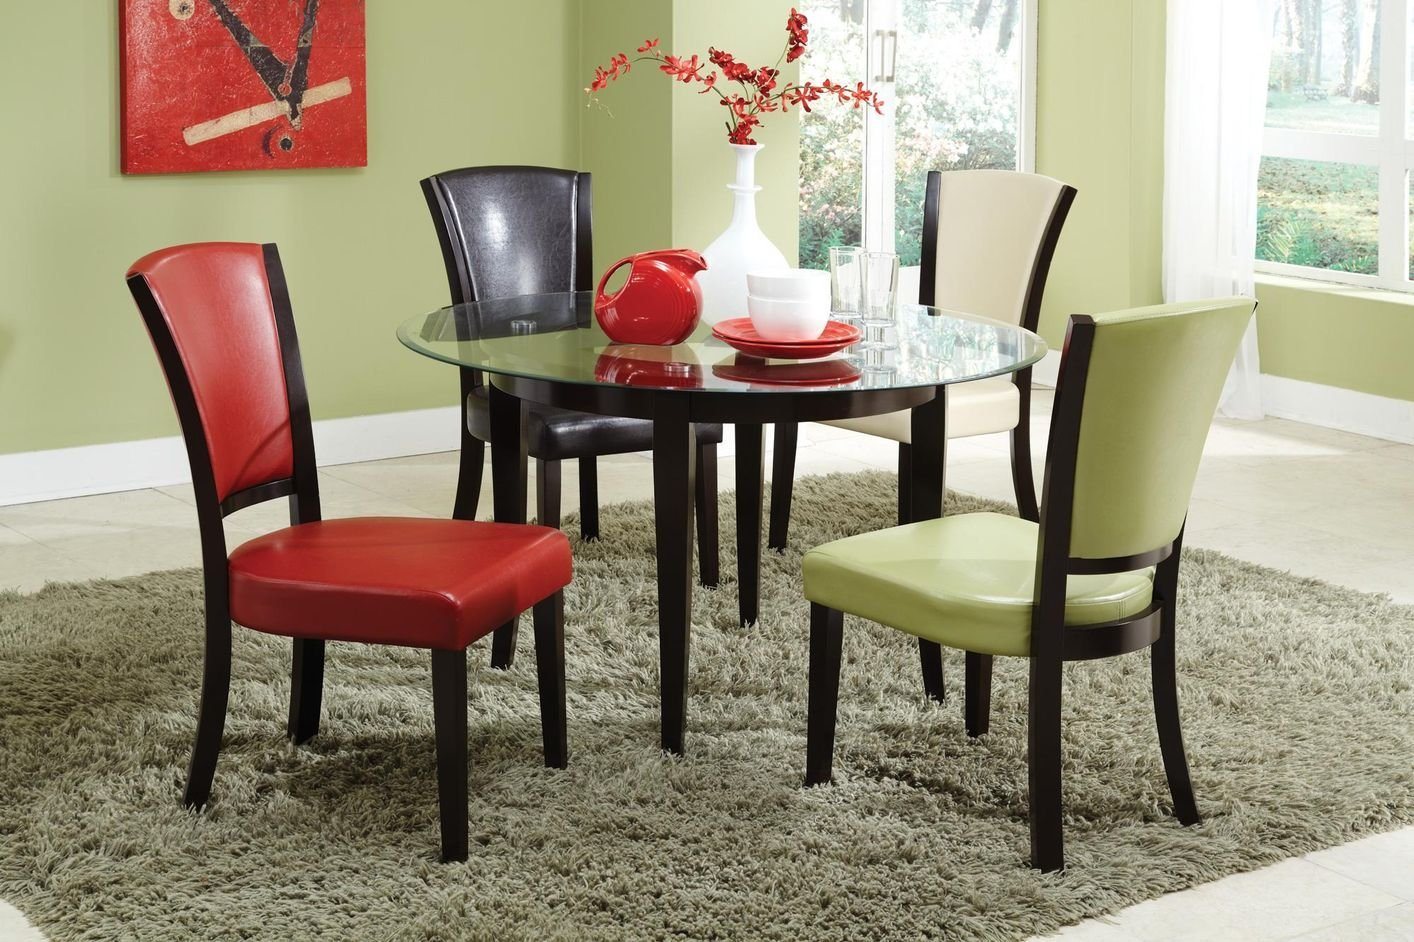 coaster charleston grn leather kitchen chairs Green Leather Dining Chair Green Leather Dining Chair